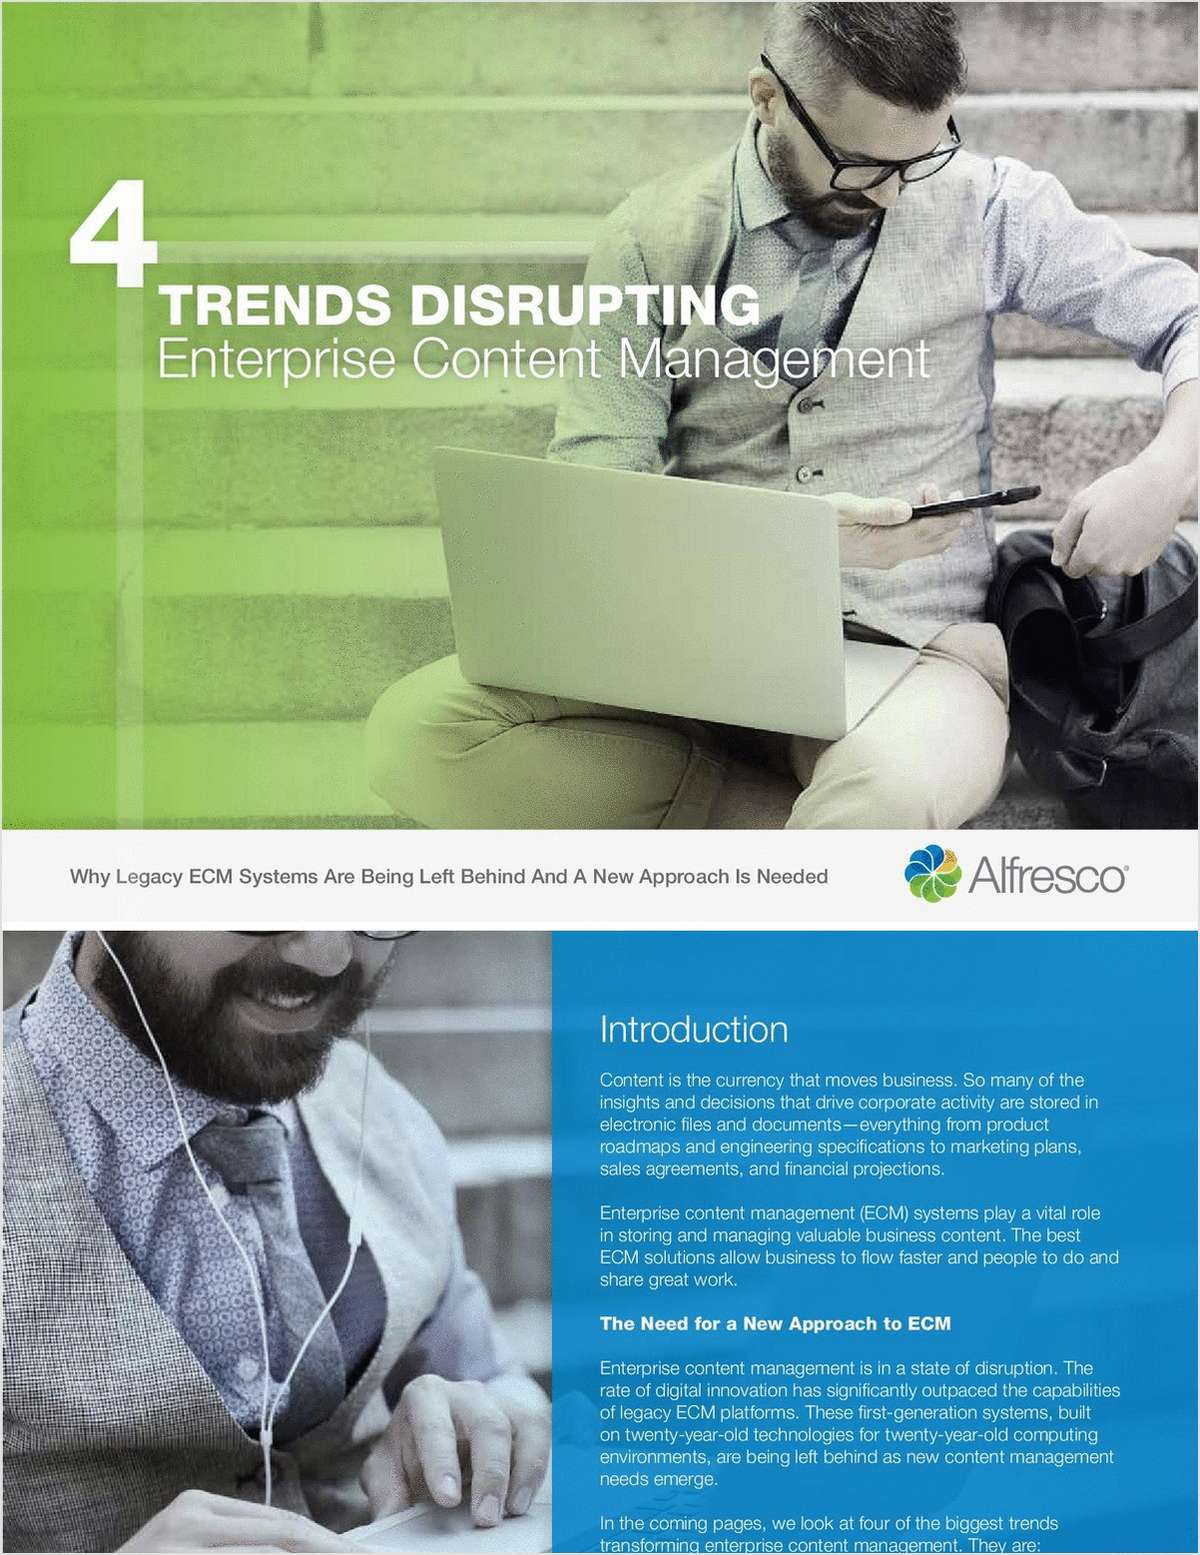 4 Trends Disrupting Enterprise Content Management